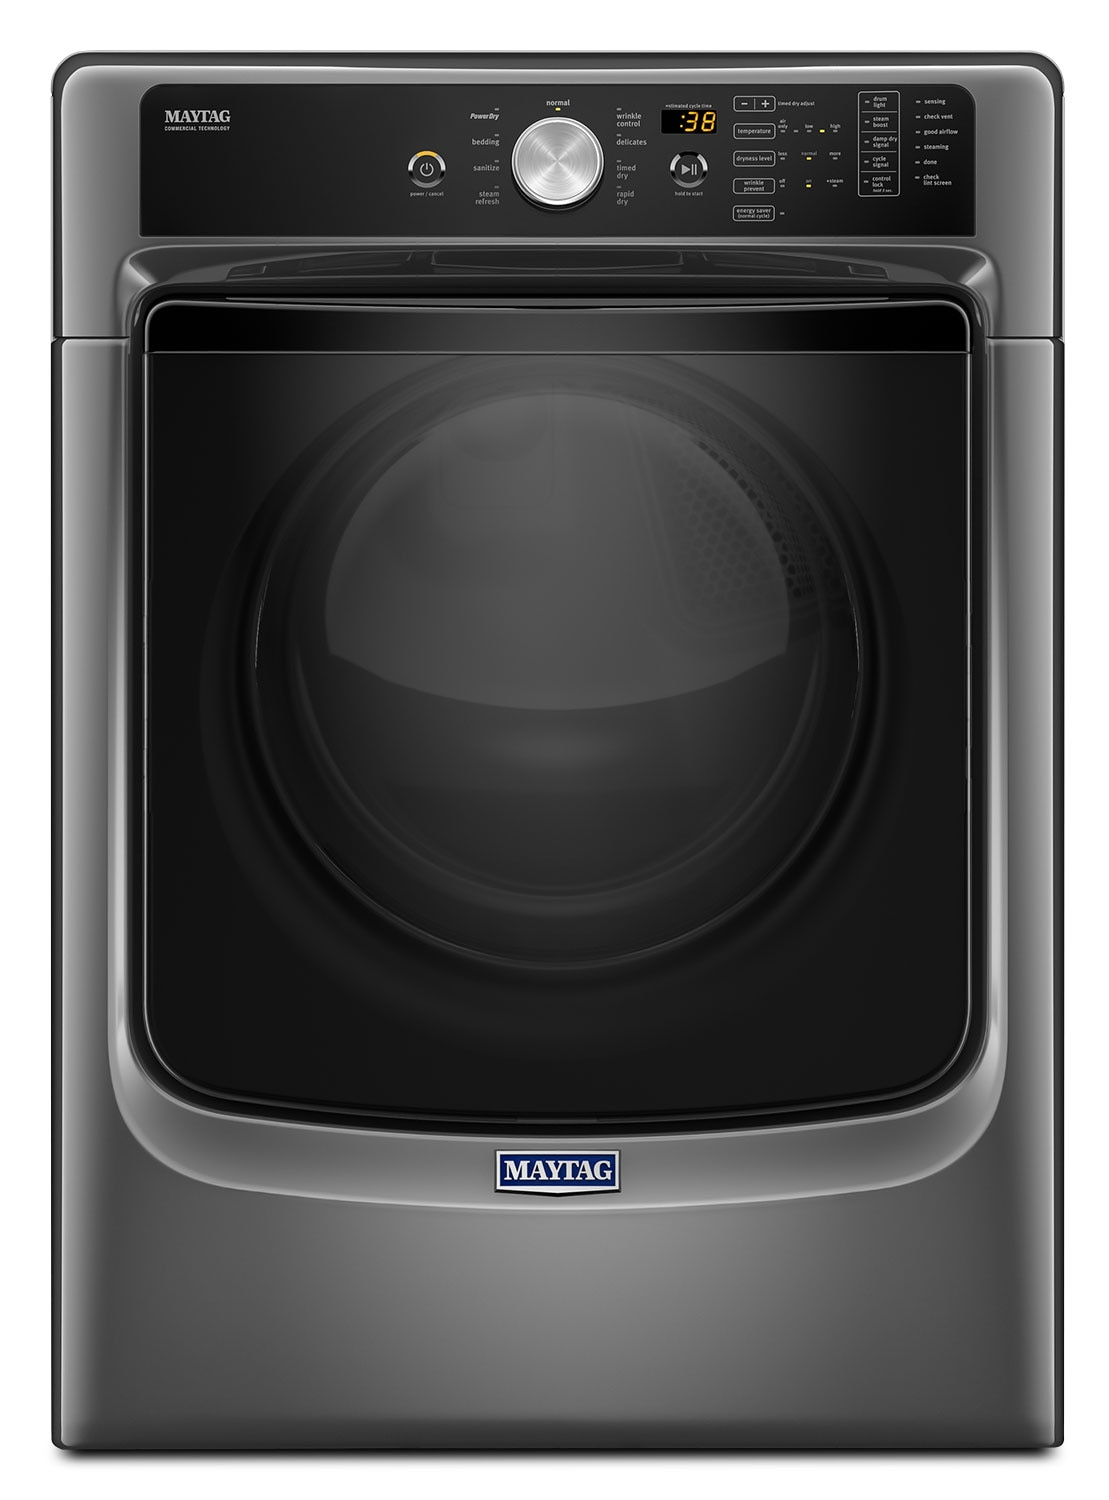 Maytag Metallic Slate Electric Dryer (7.4 Cu. Ft.) - YMED5500FC